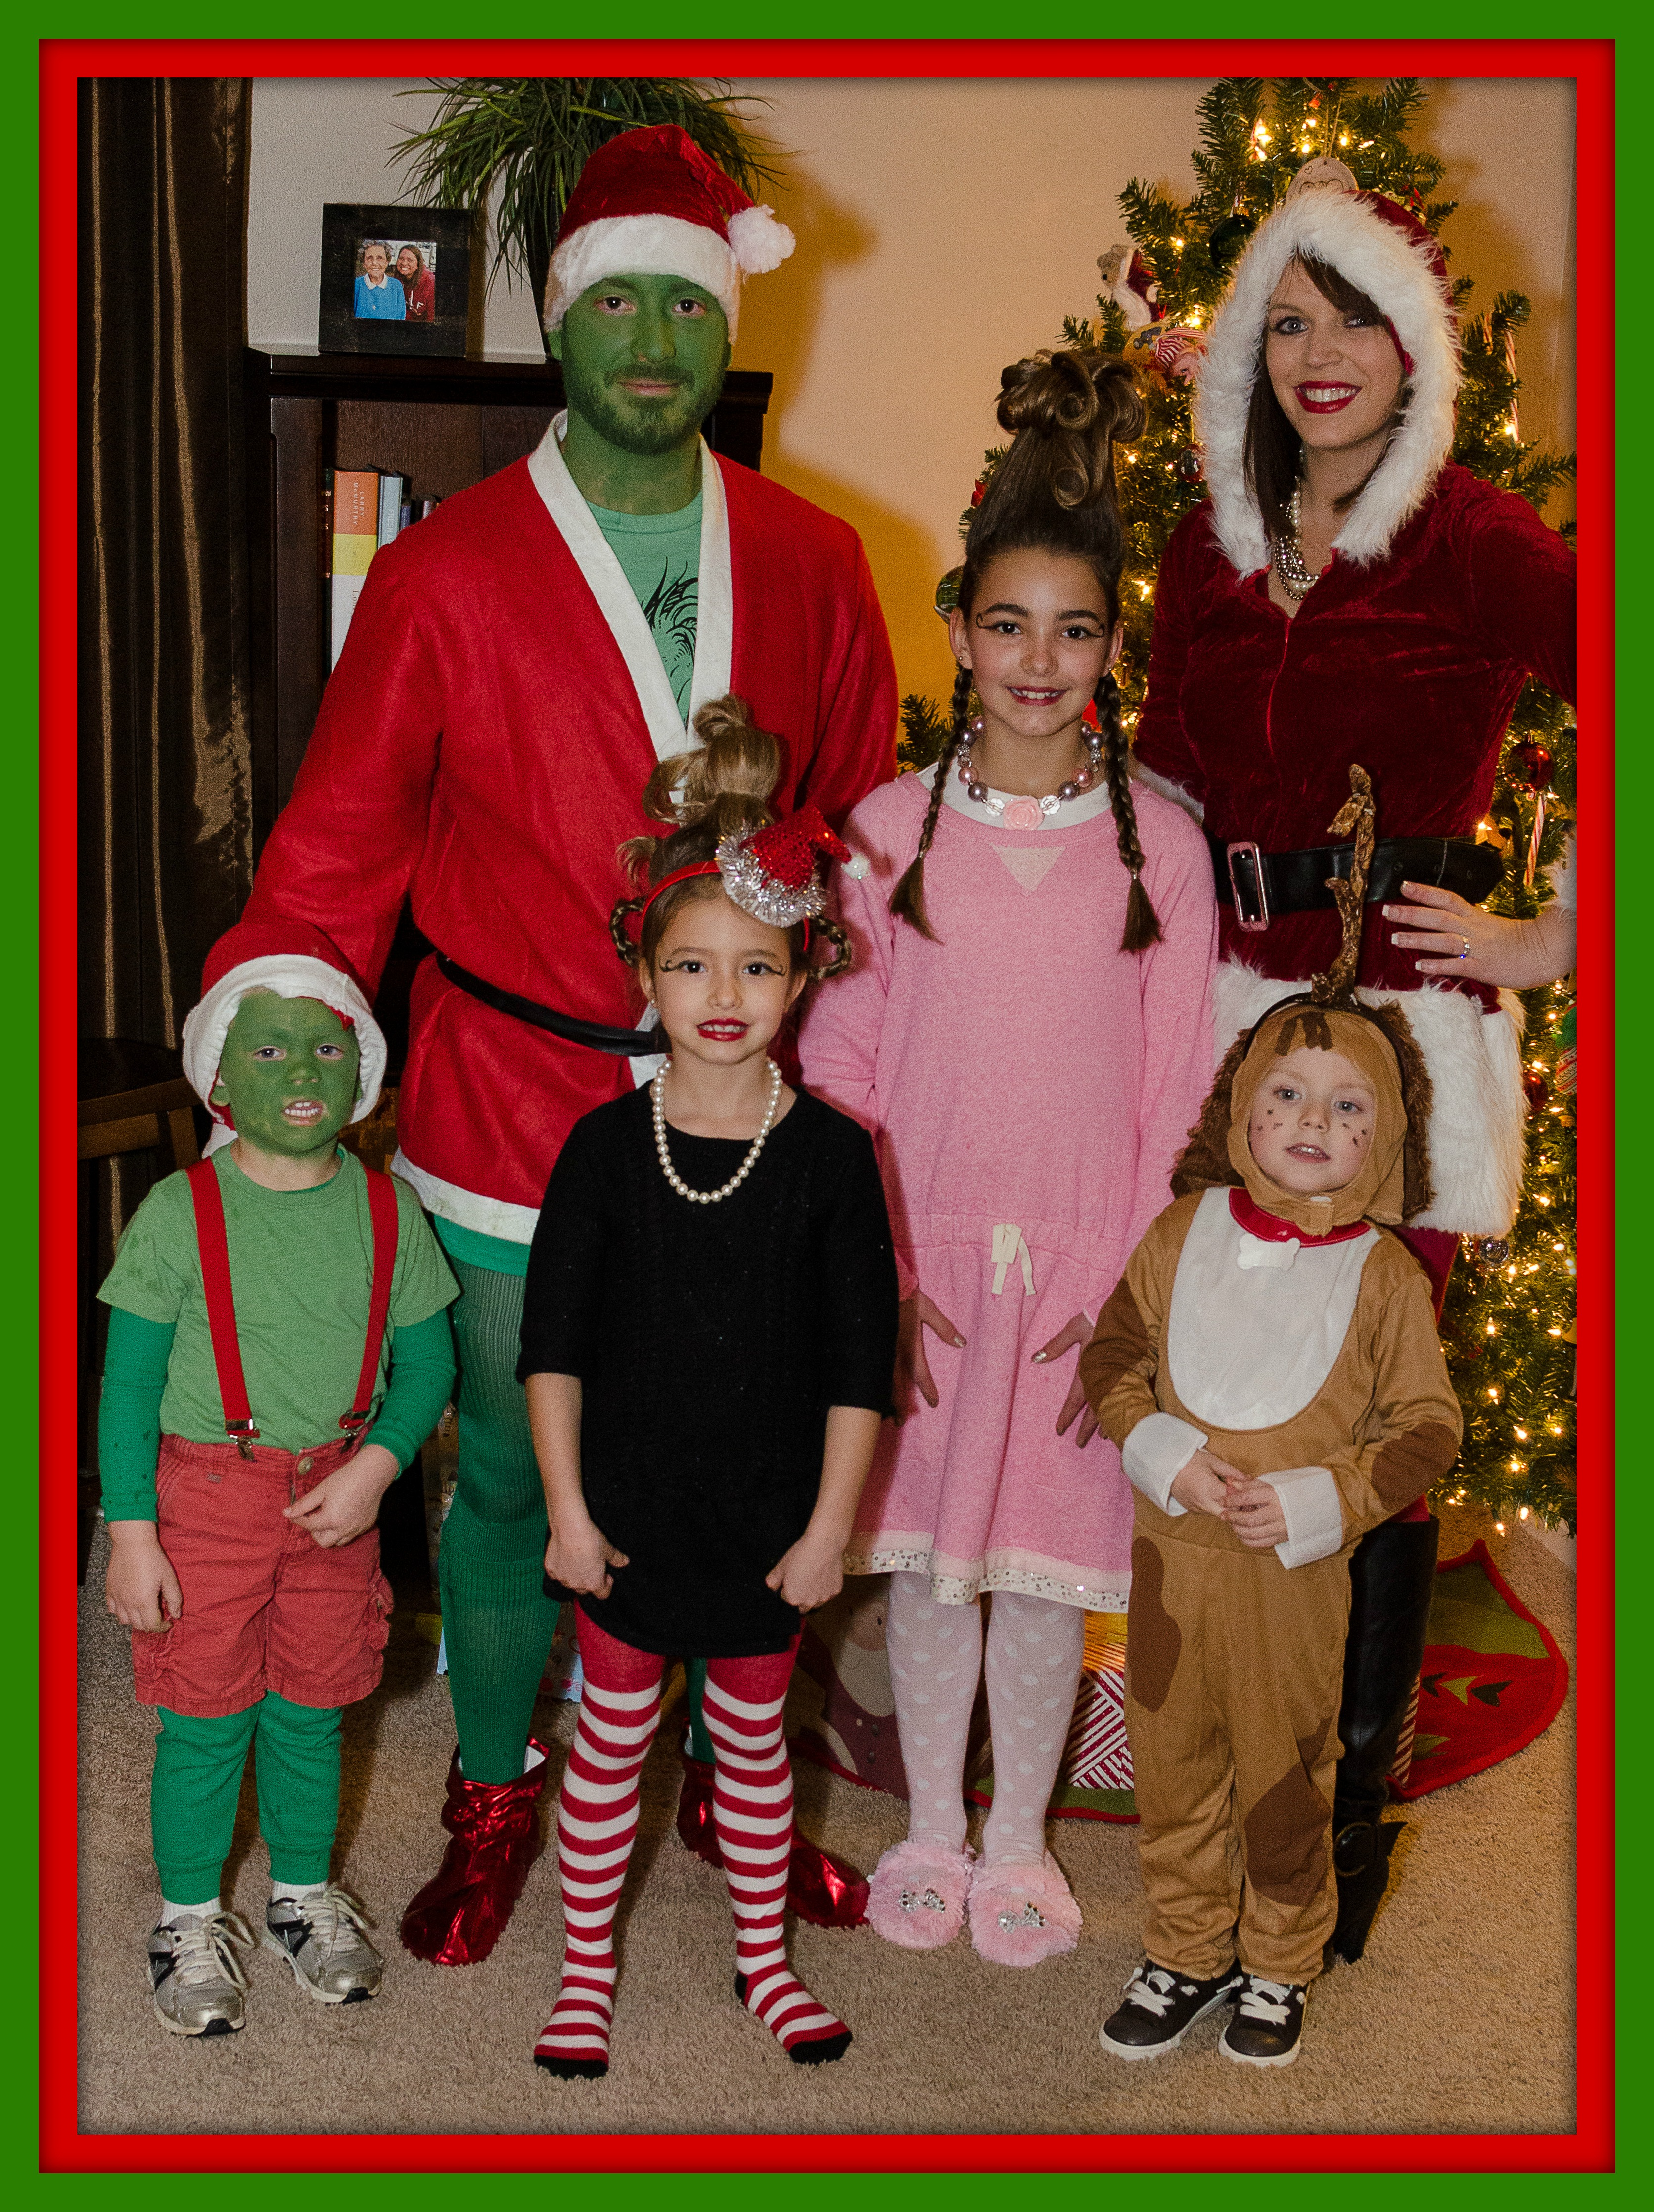 My beautiful aunt paula dressed up as an elf uncle frank was a